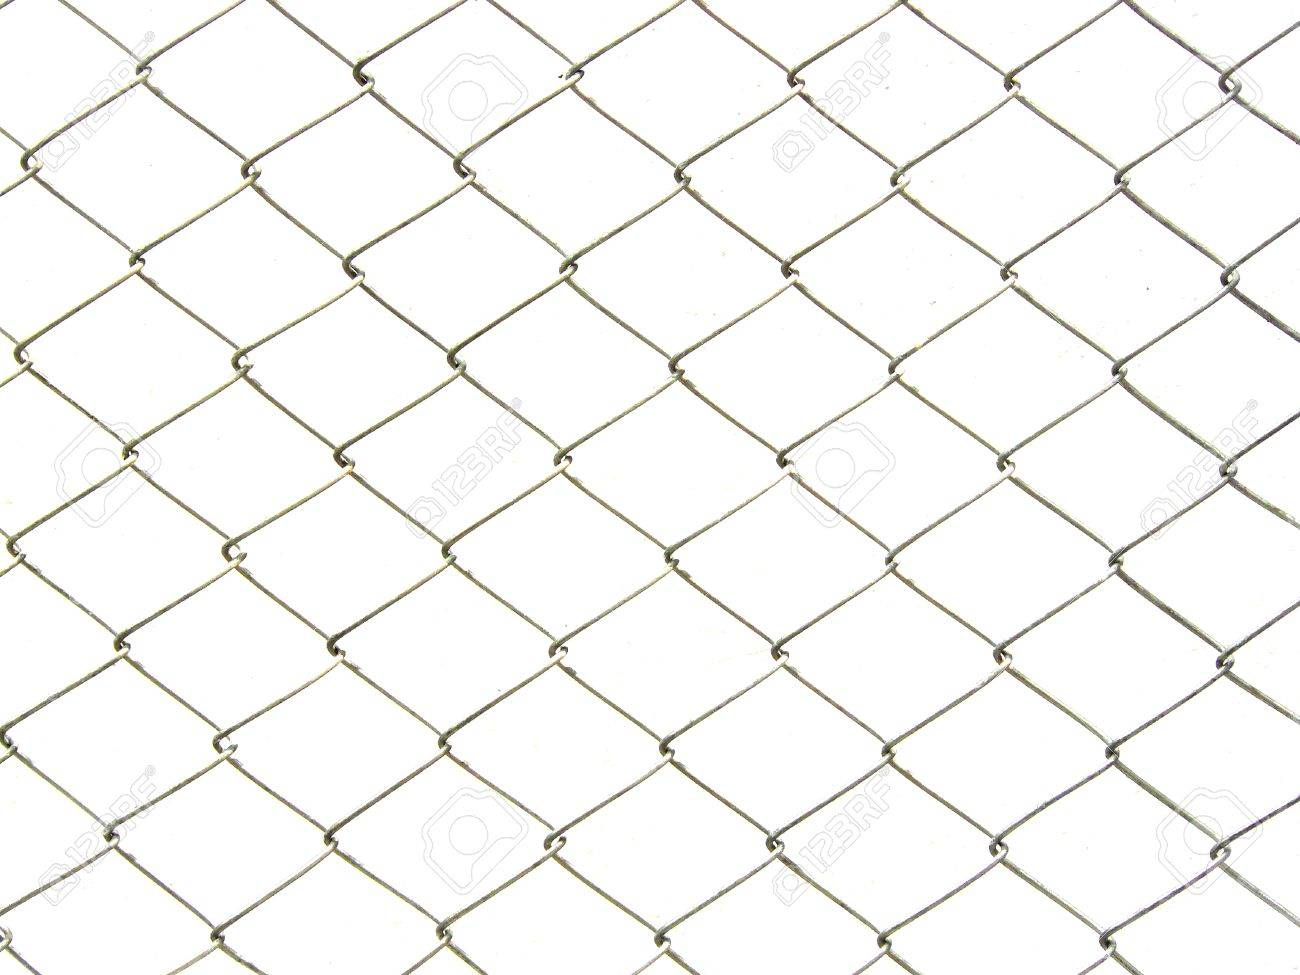 Repeating Chain Link Fence White Metal Wire Mesh Or Metal Net ...